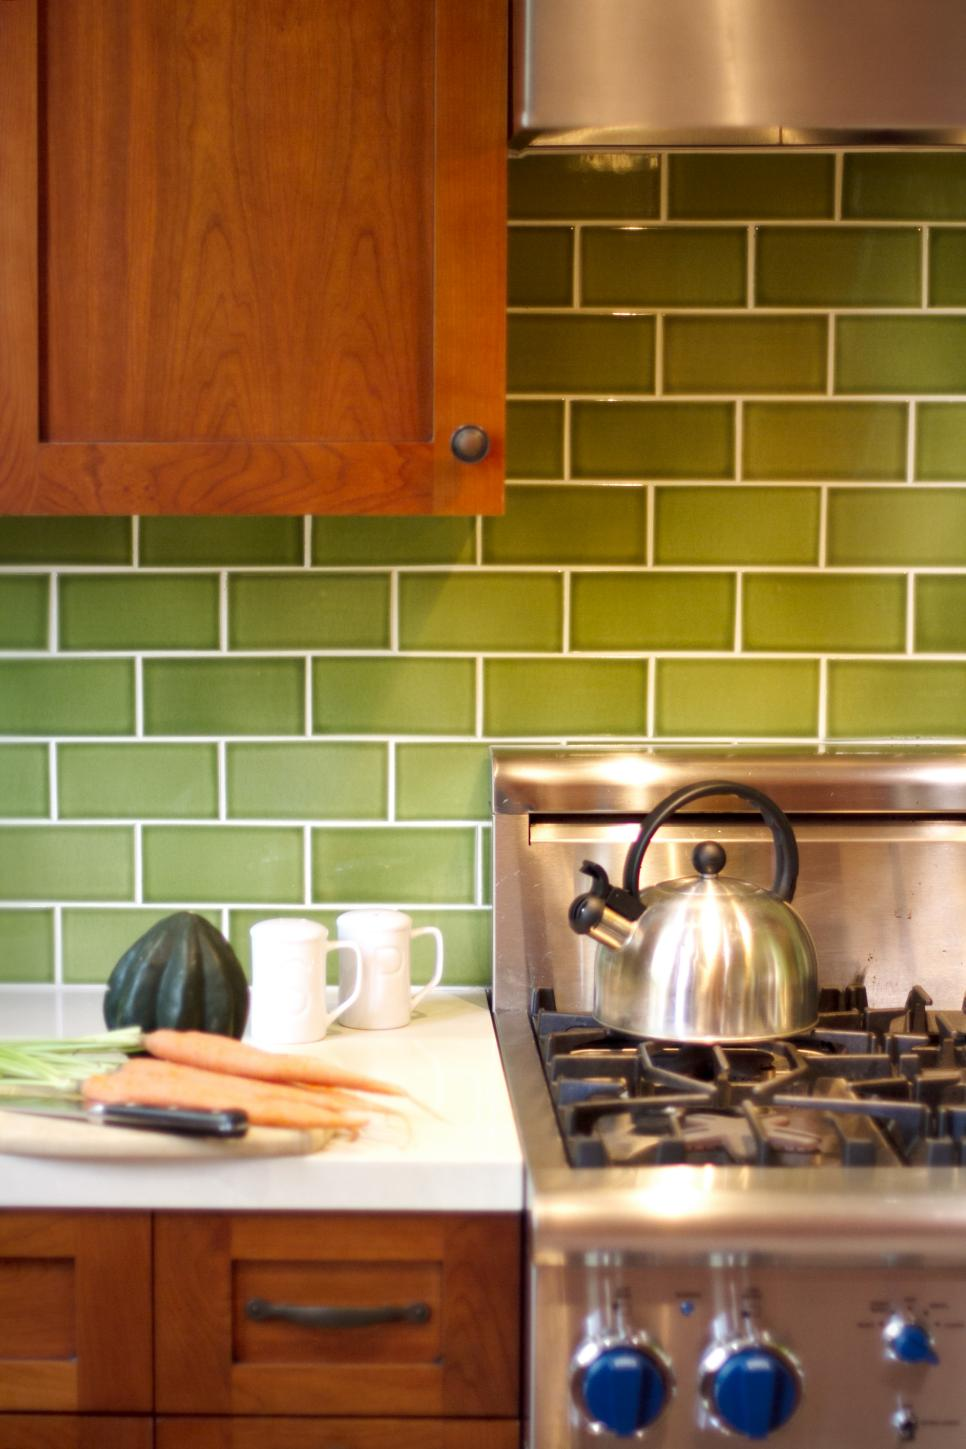 11 creative subway tile backsplash ideas | hgtv